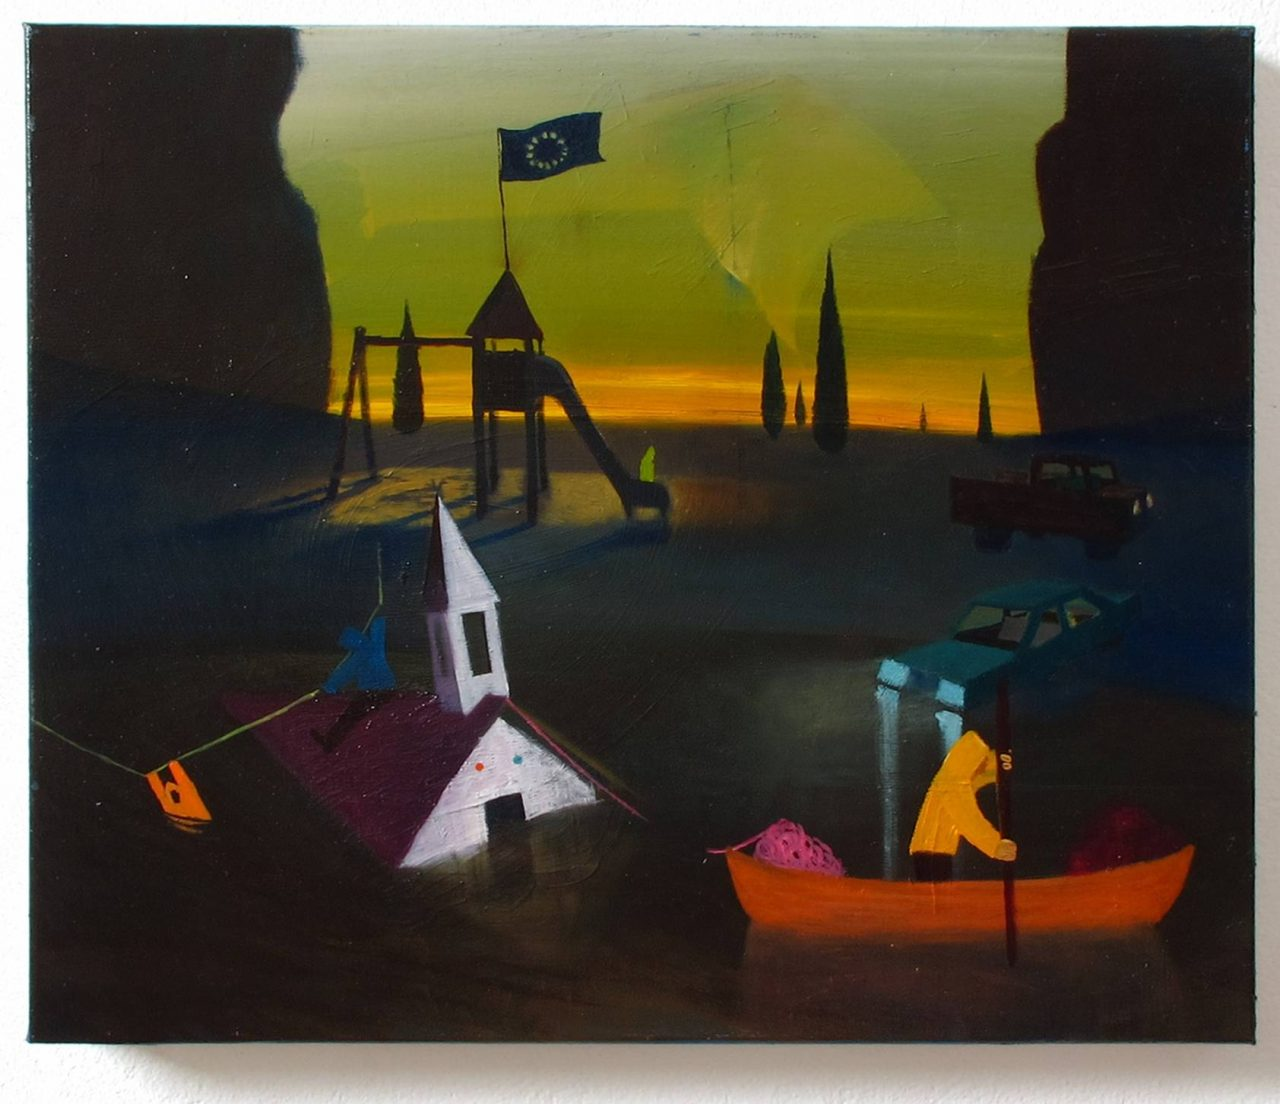 Abendstimmung, 50x60cm, oil on canvas, 2012, private collection, Saudi- Arabia